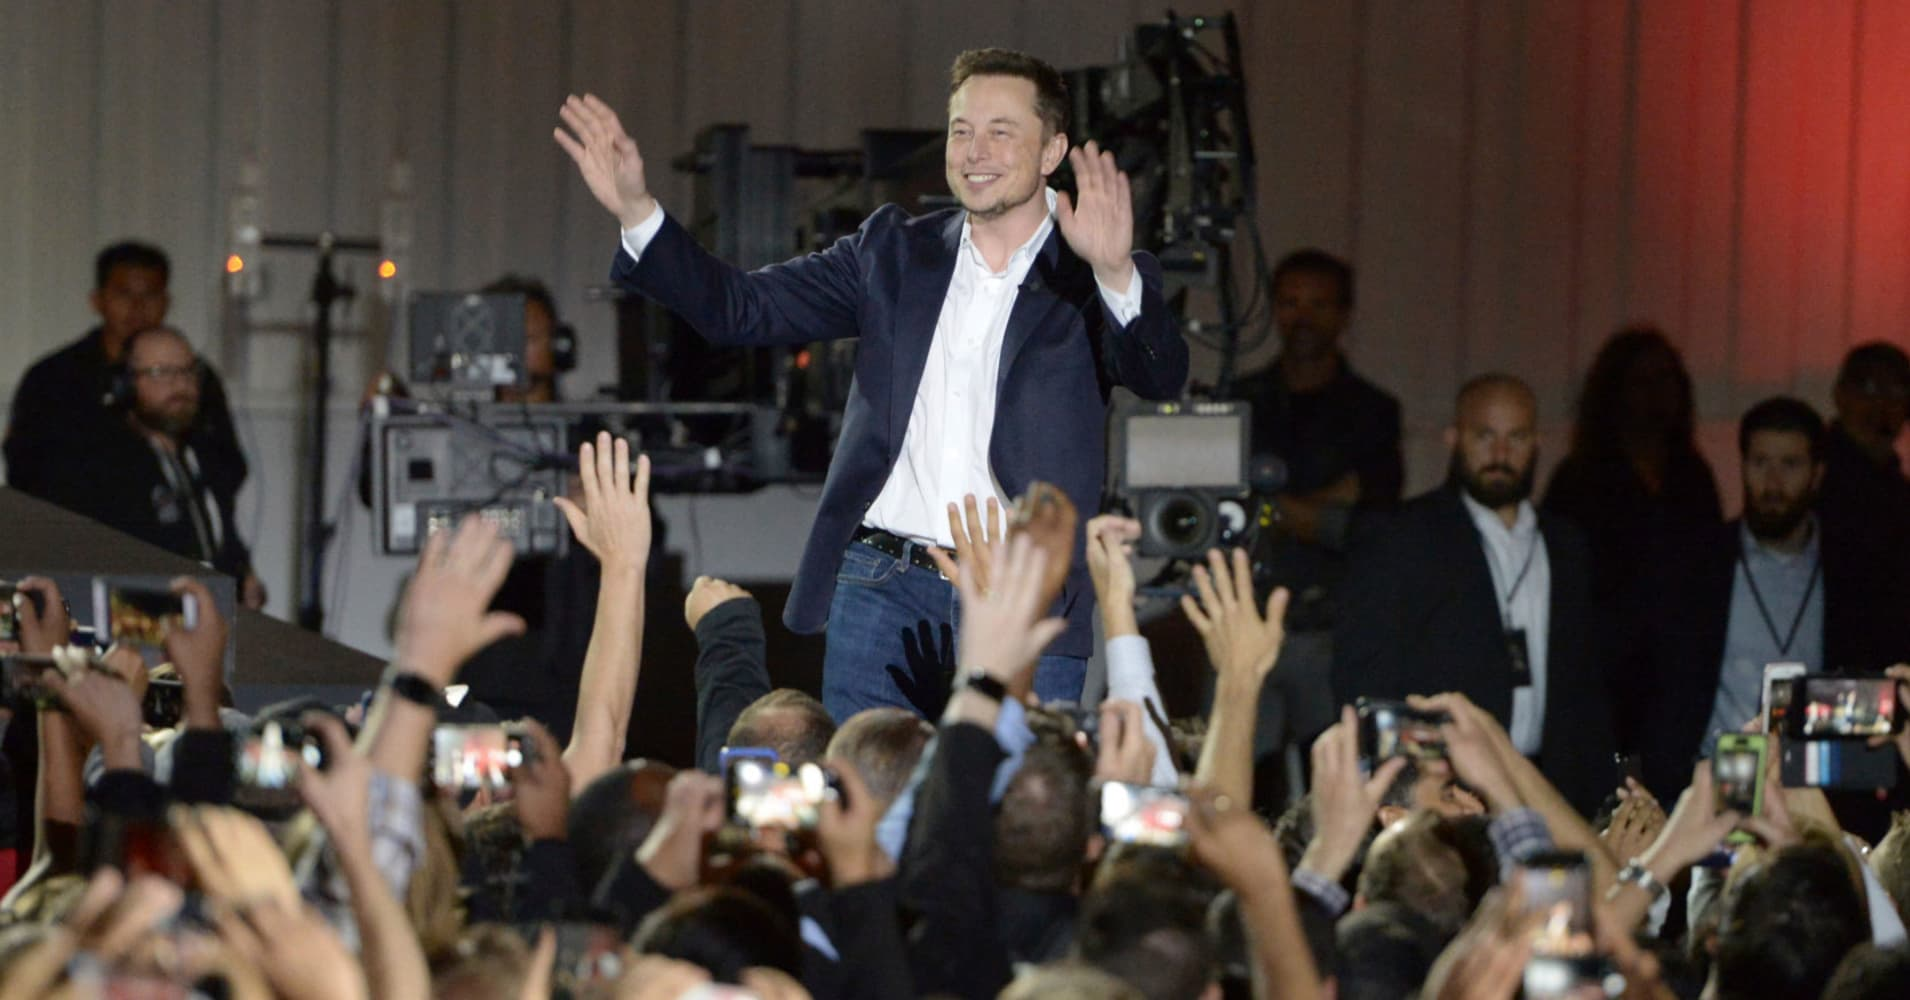 Tesla CEO Elon Musk is celebrated by employees during the presentation of Model 3 vehicles in Fremont, California, July 28, 2017.